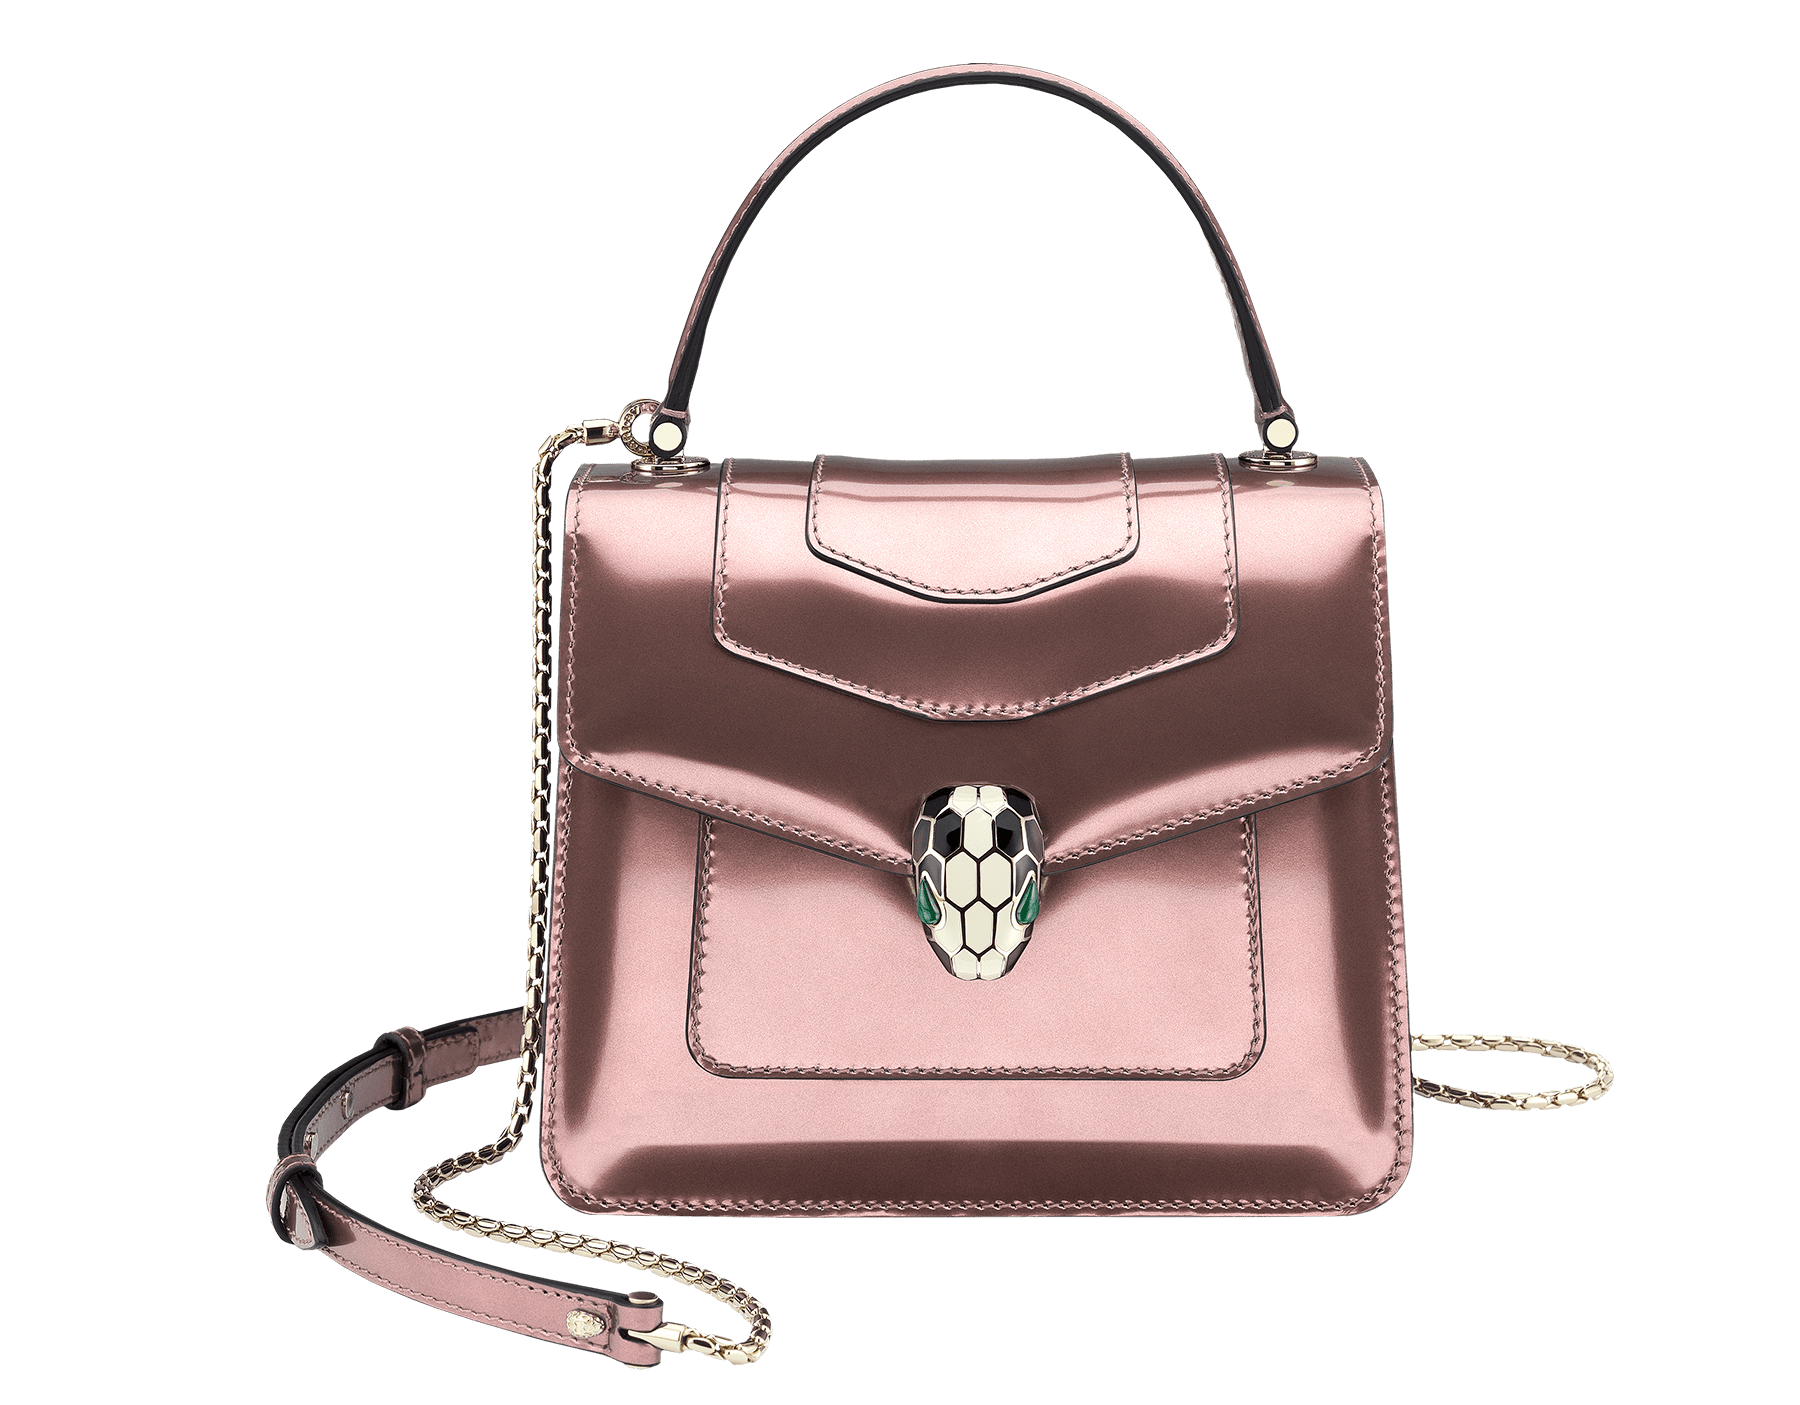 Flap cover bag Serpenti Forever in rose quartz brushed metallic calf leather. Brass light gold plated hardware and snake head closure in black and white enamel, with eyes in green malachite. 284802 image 1